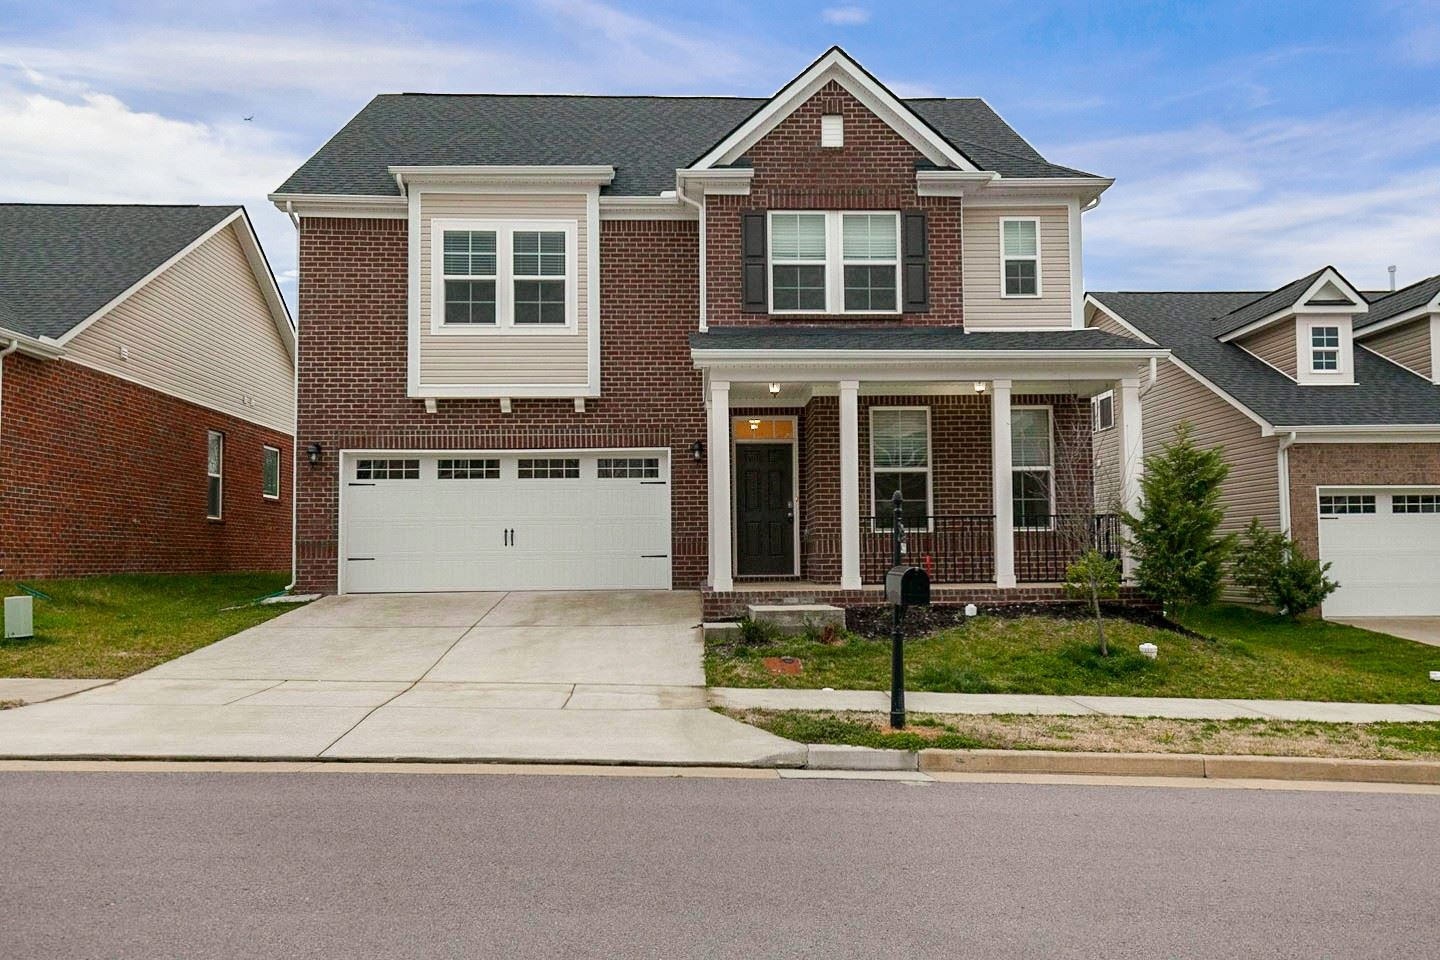 Photo of 2868 Whitebirch DR, Hermitage, TN 37076 (MLS # 2123424)